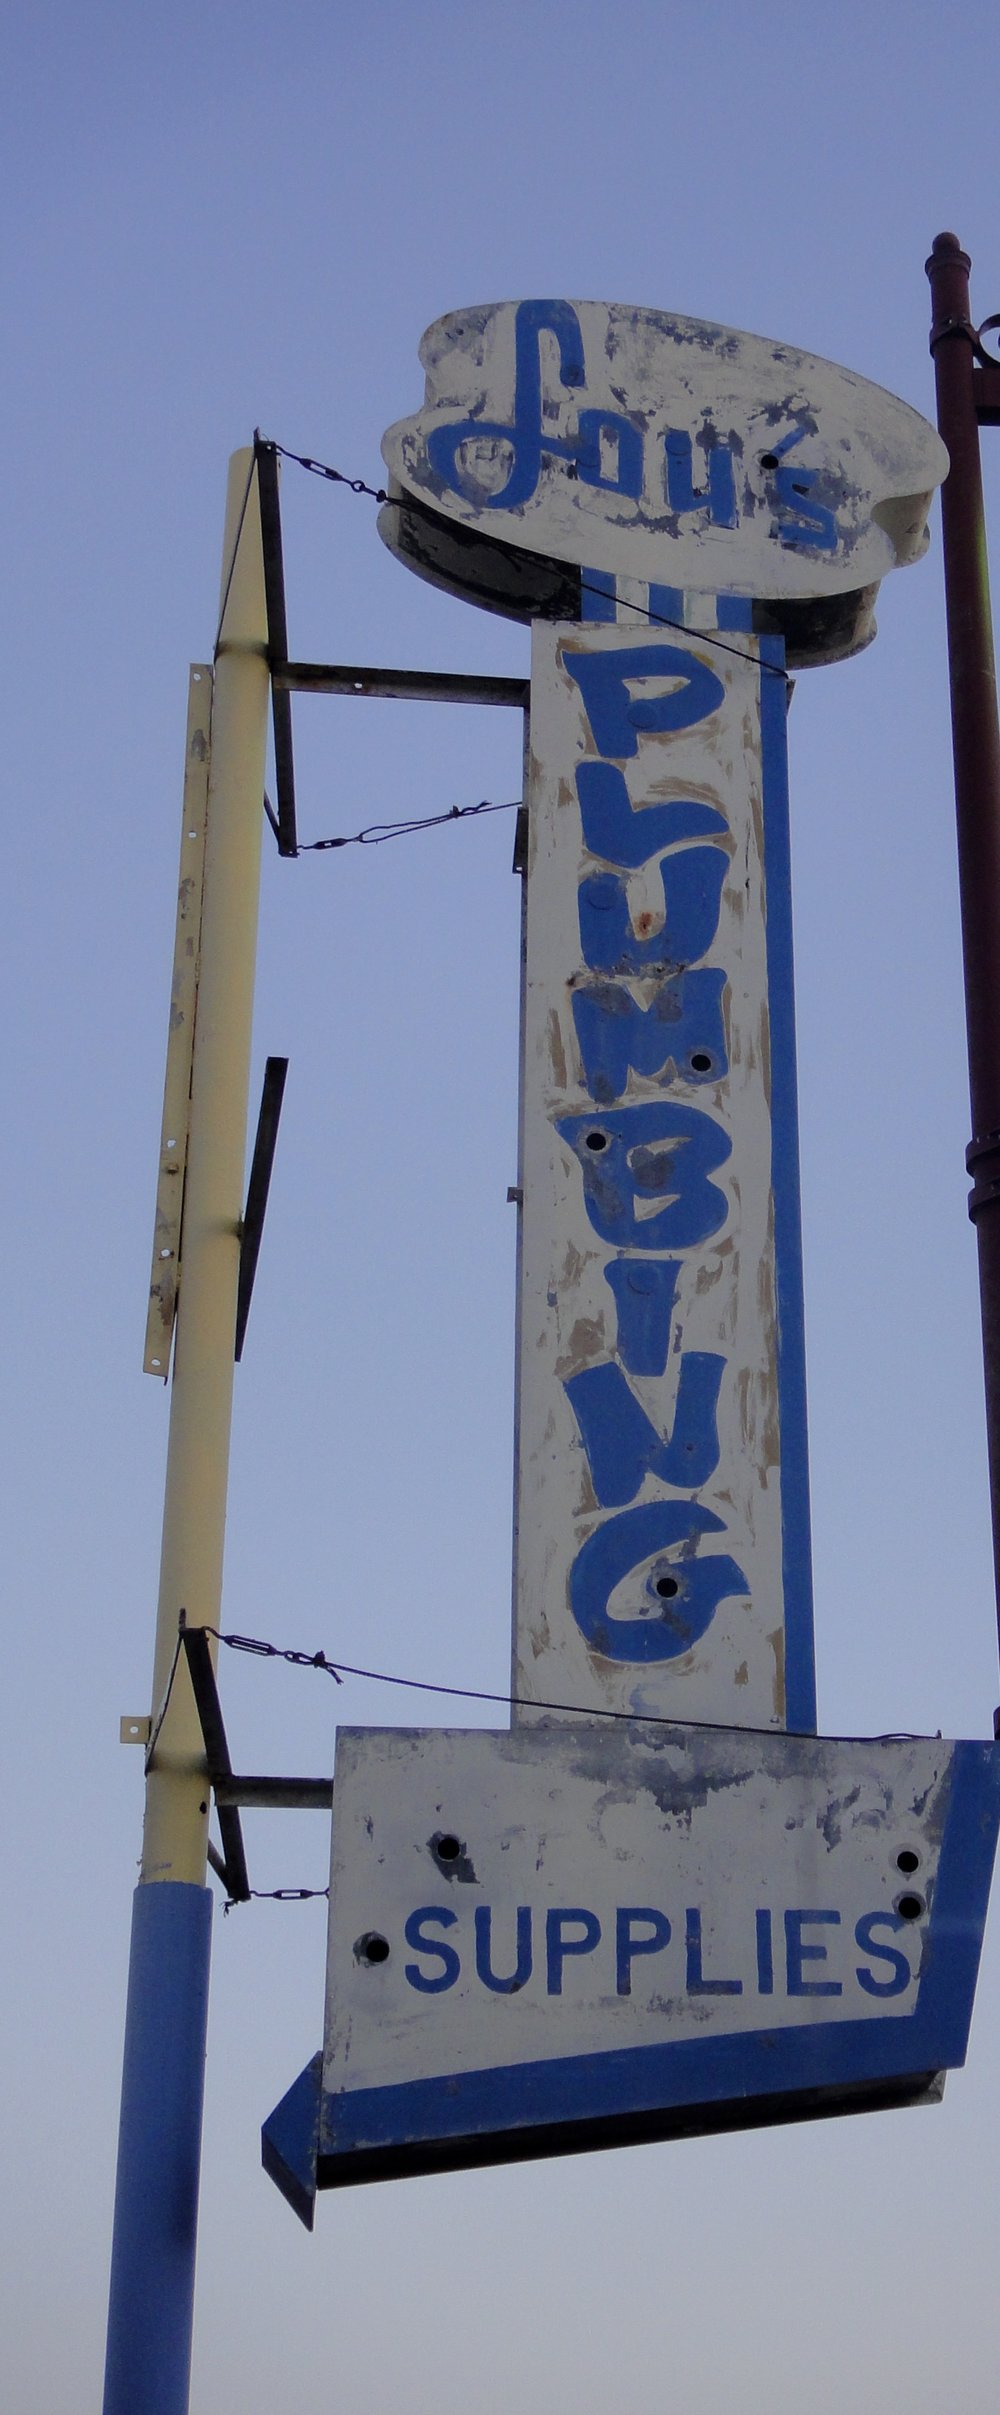 We did business for many years with Lou's Plumbing in South Tucson on Fourth Avenue. Still lament that it closed.